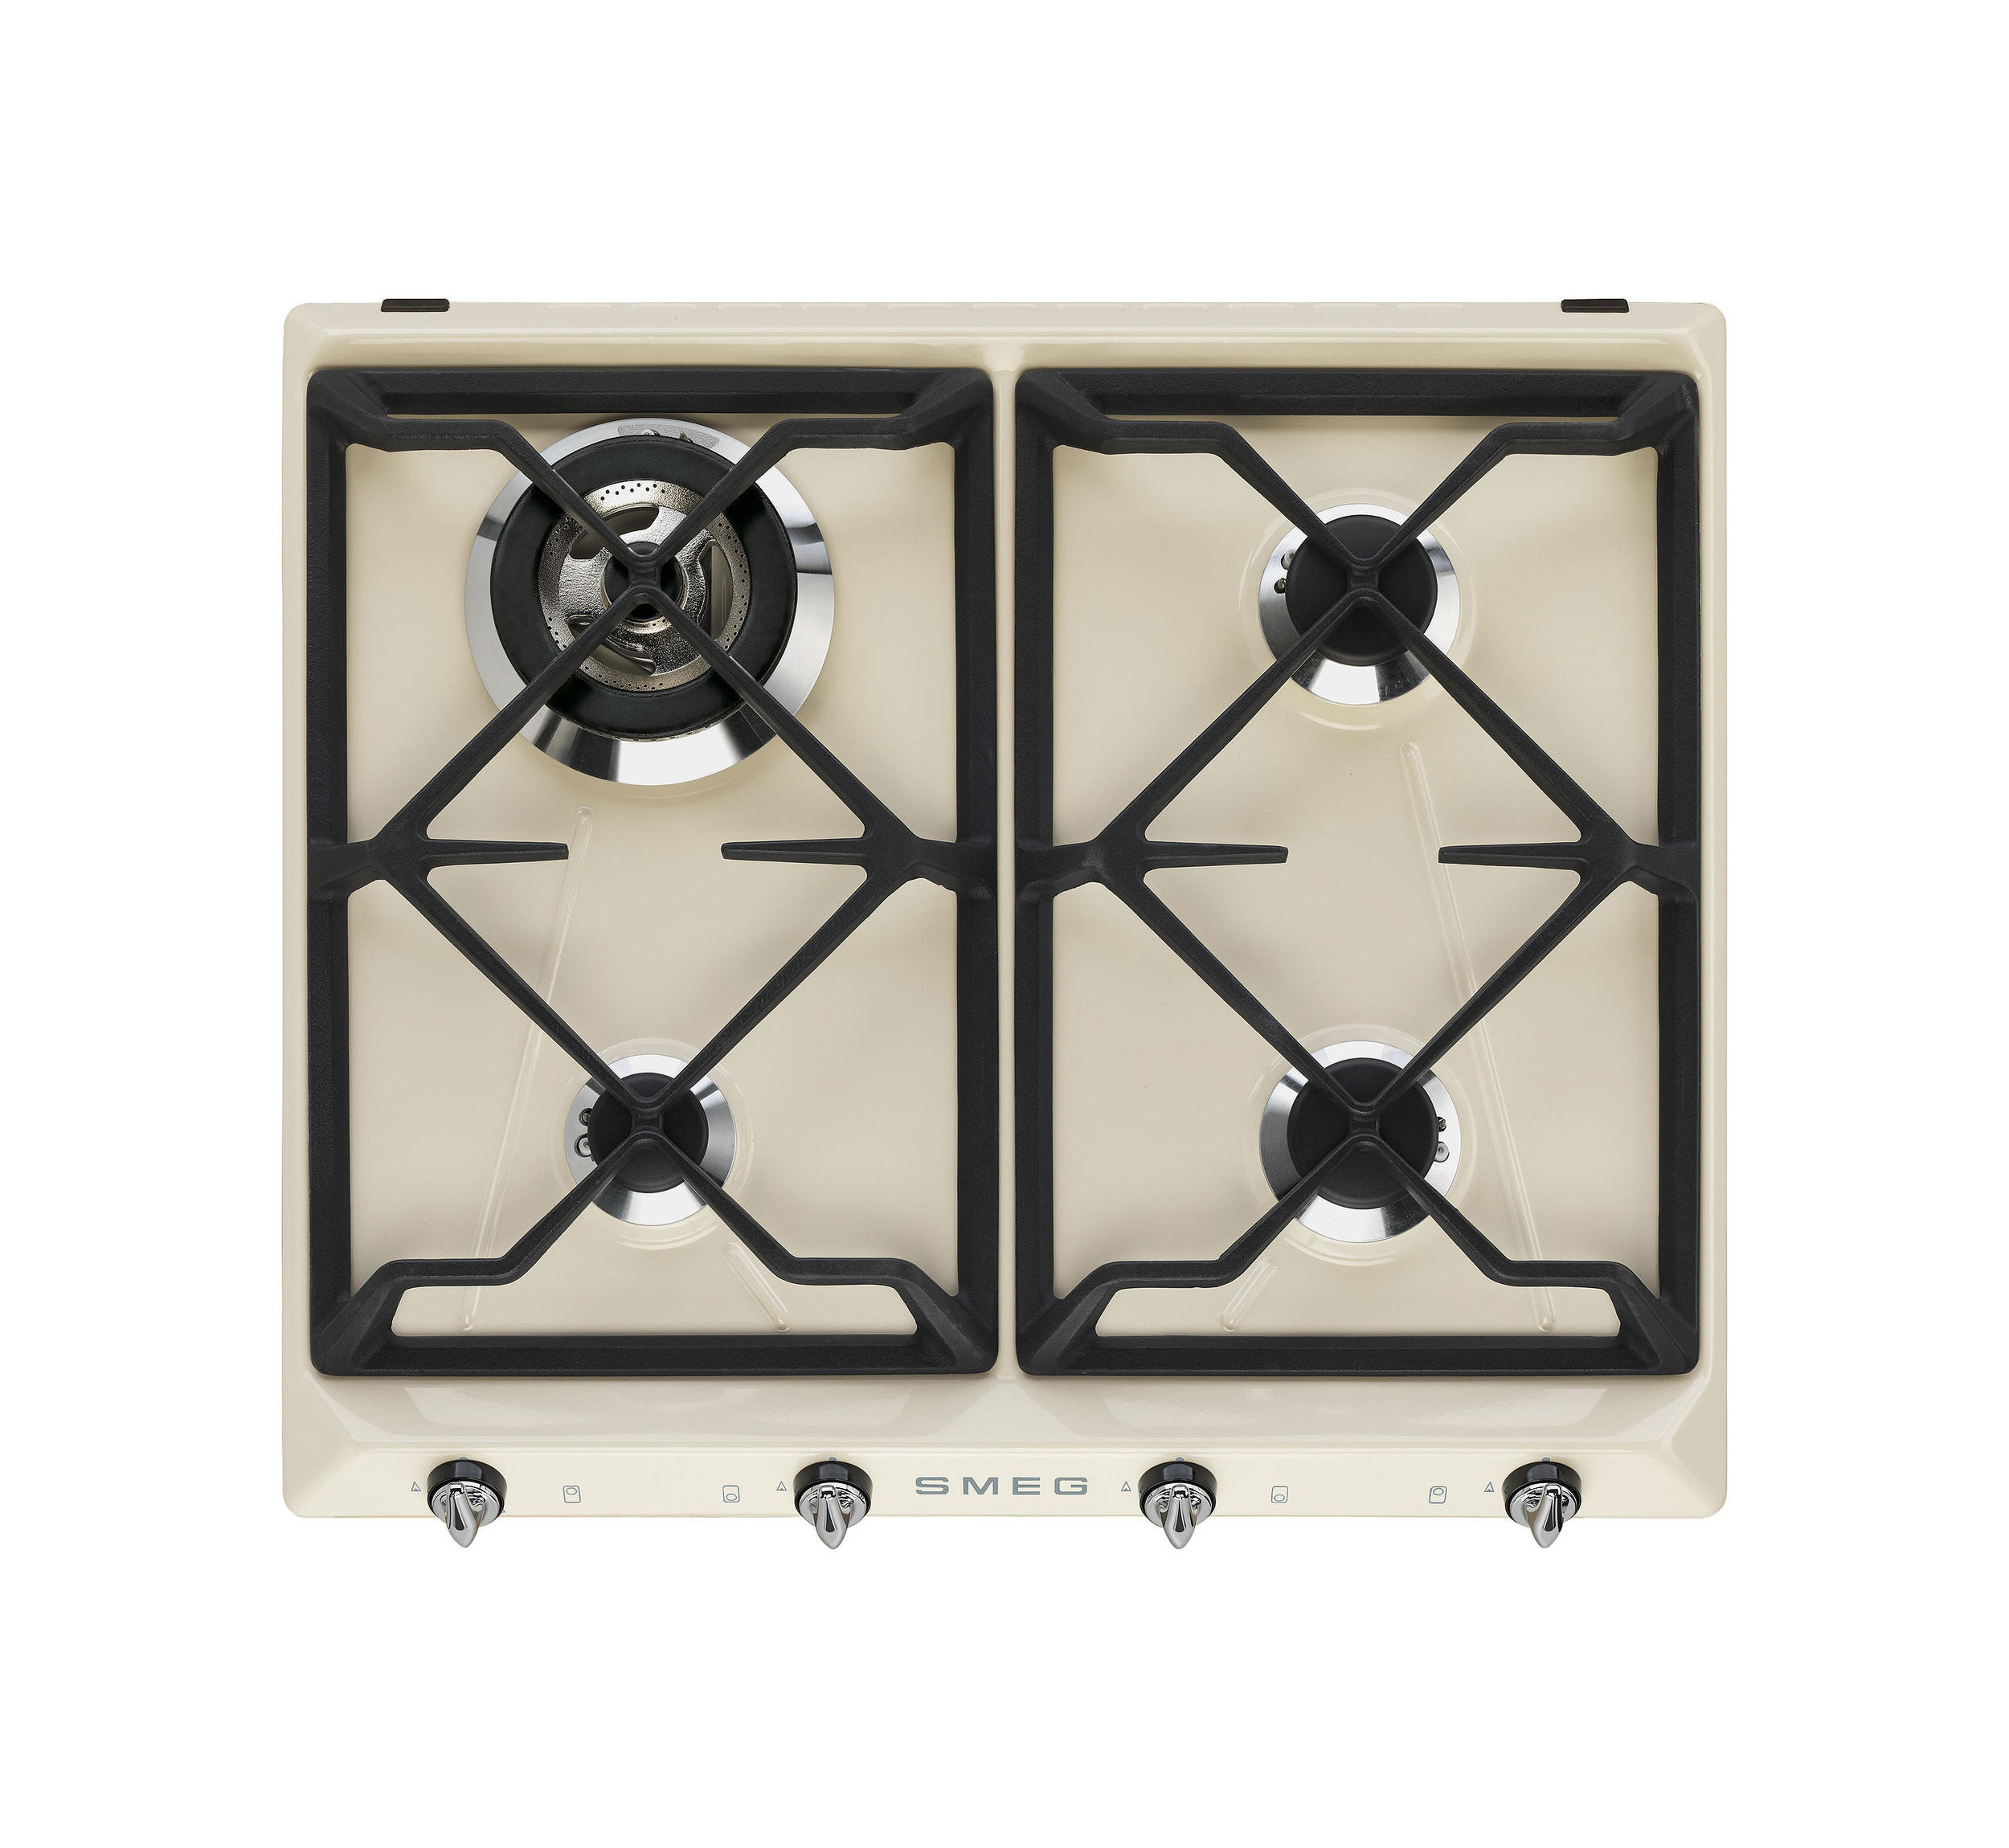 Smeg Victoria 60 Cream Gas Hob